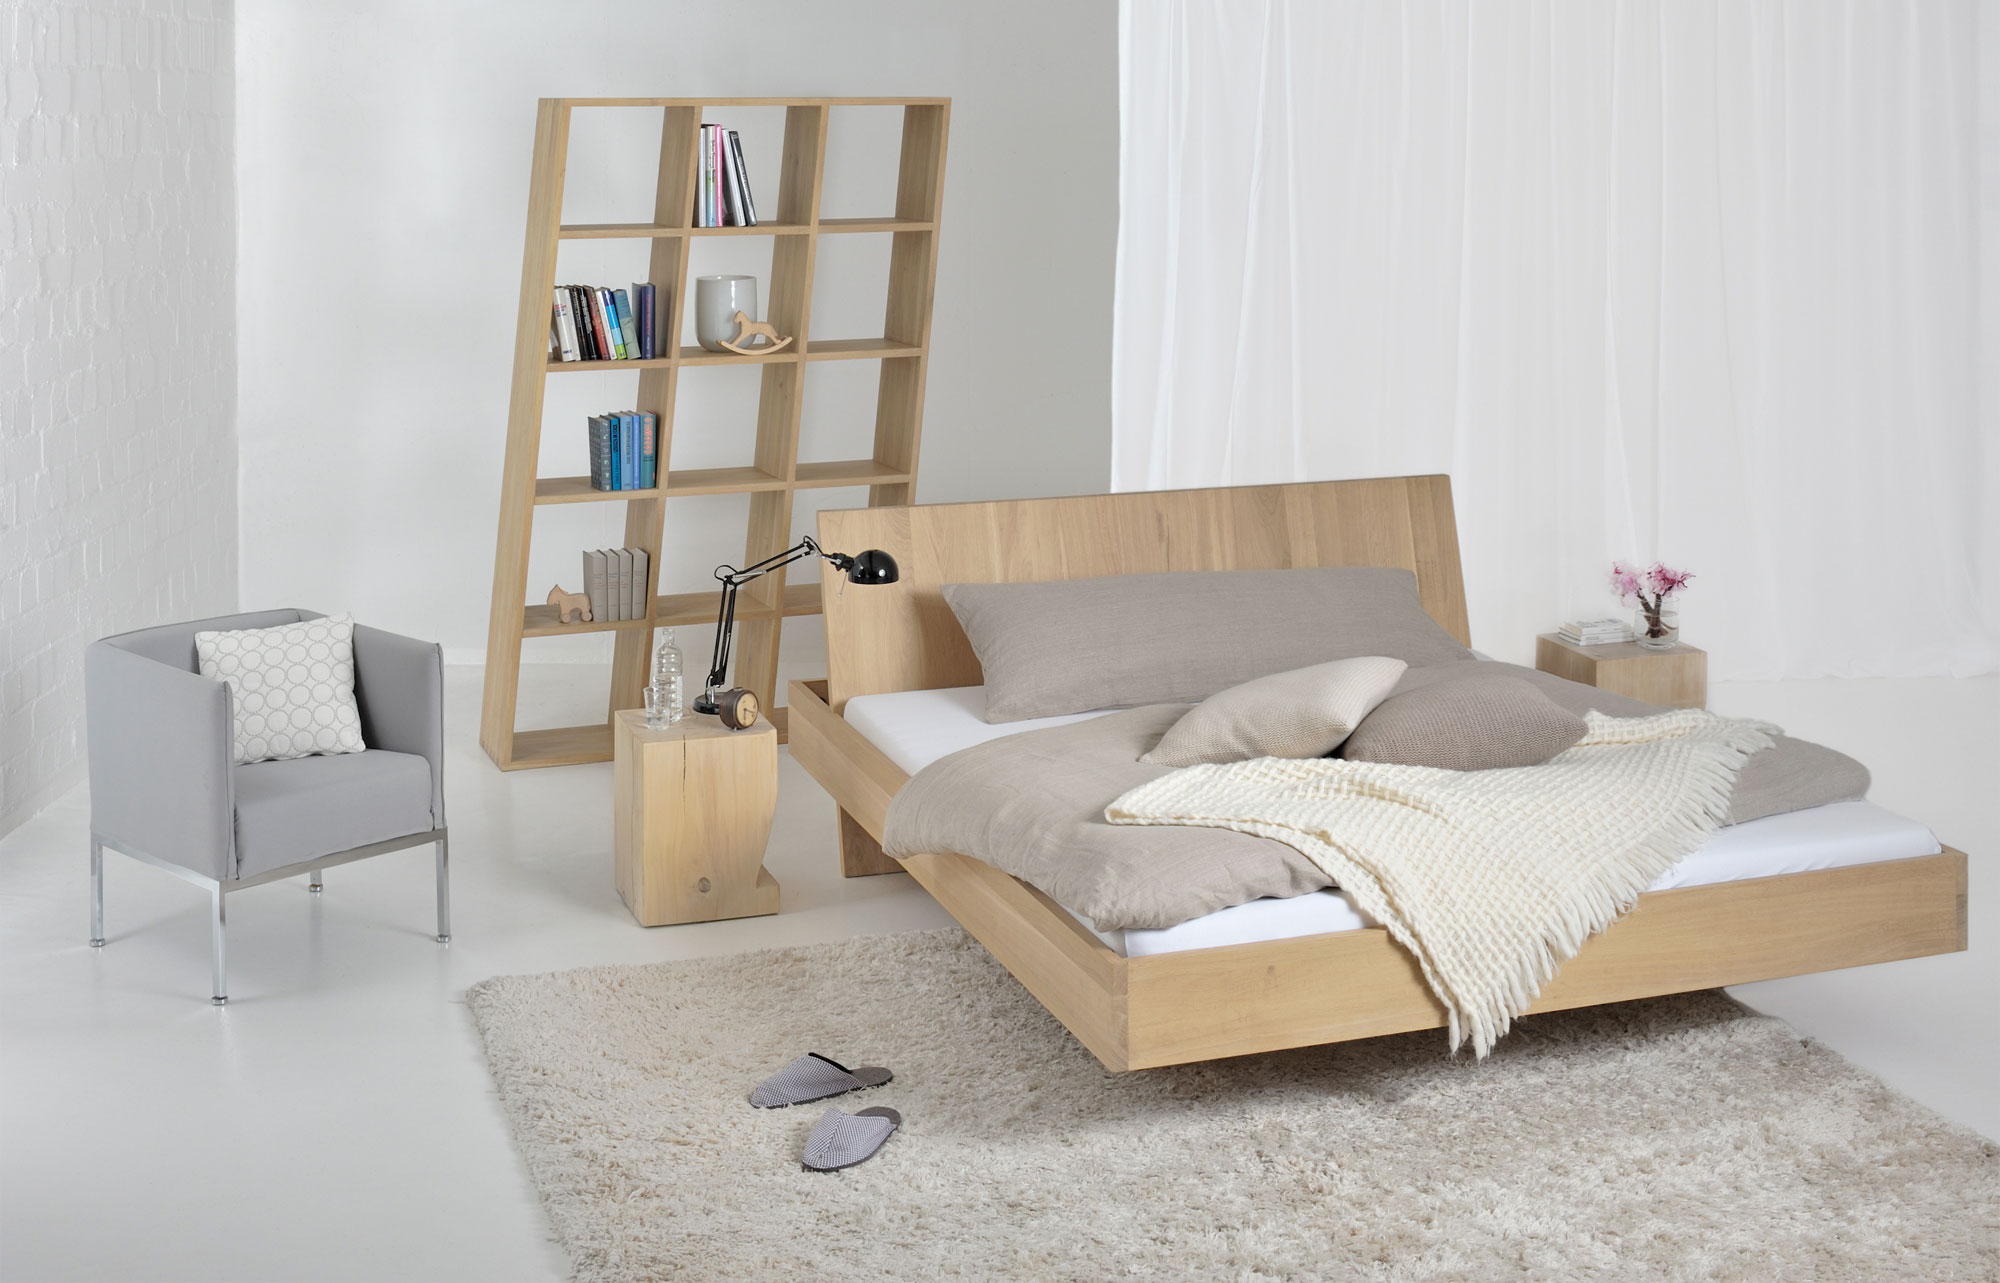 Design Solid Wood Bed SOMNIA 3023 custom made in solid wood by vitamin design